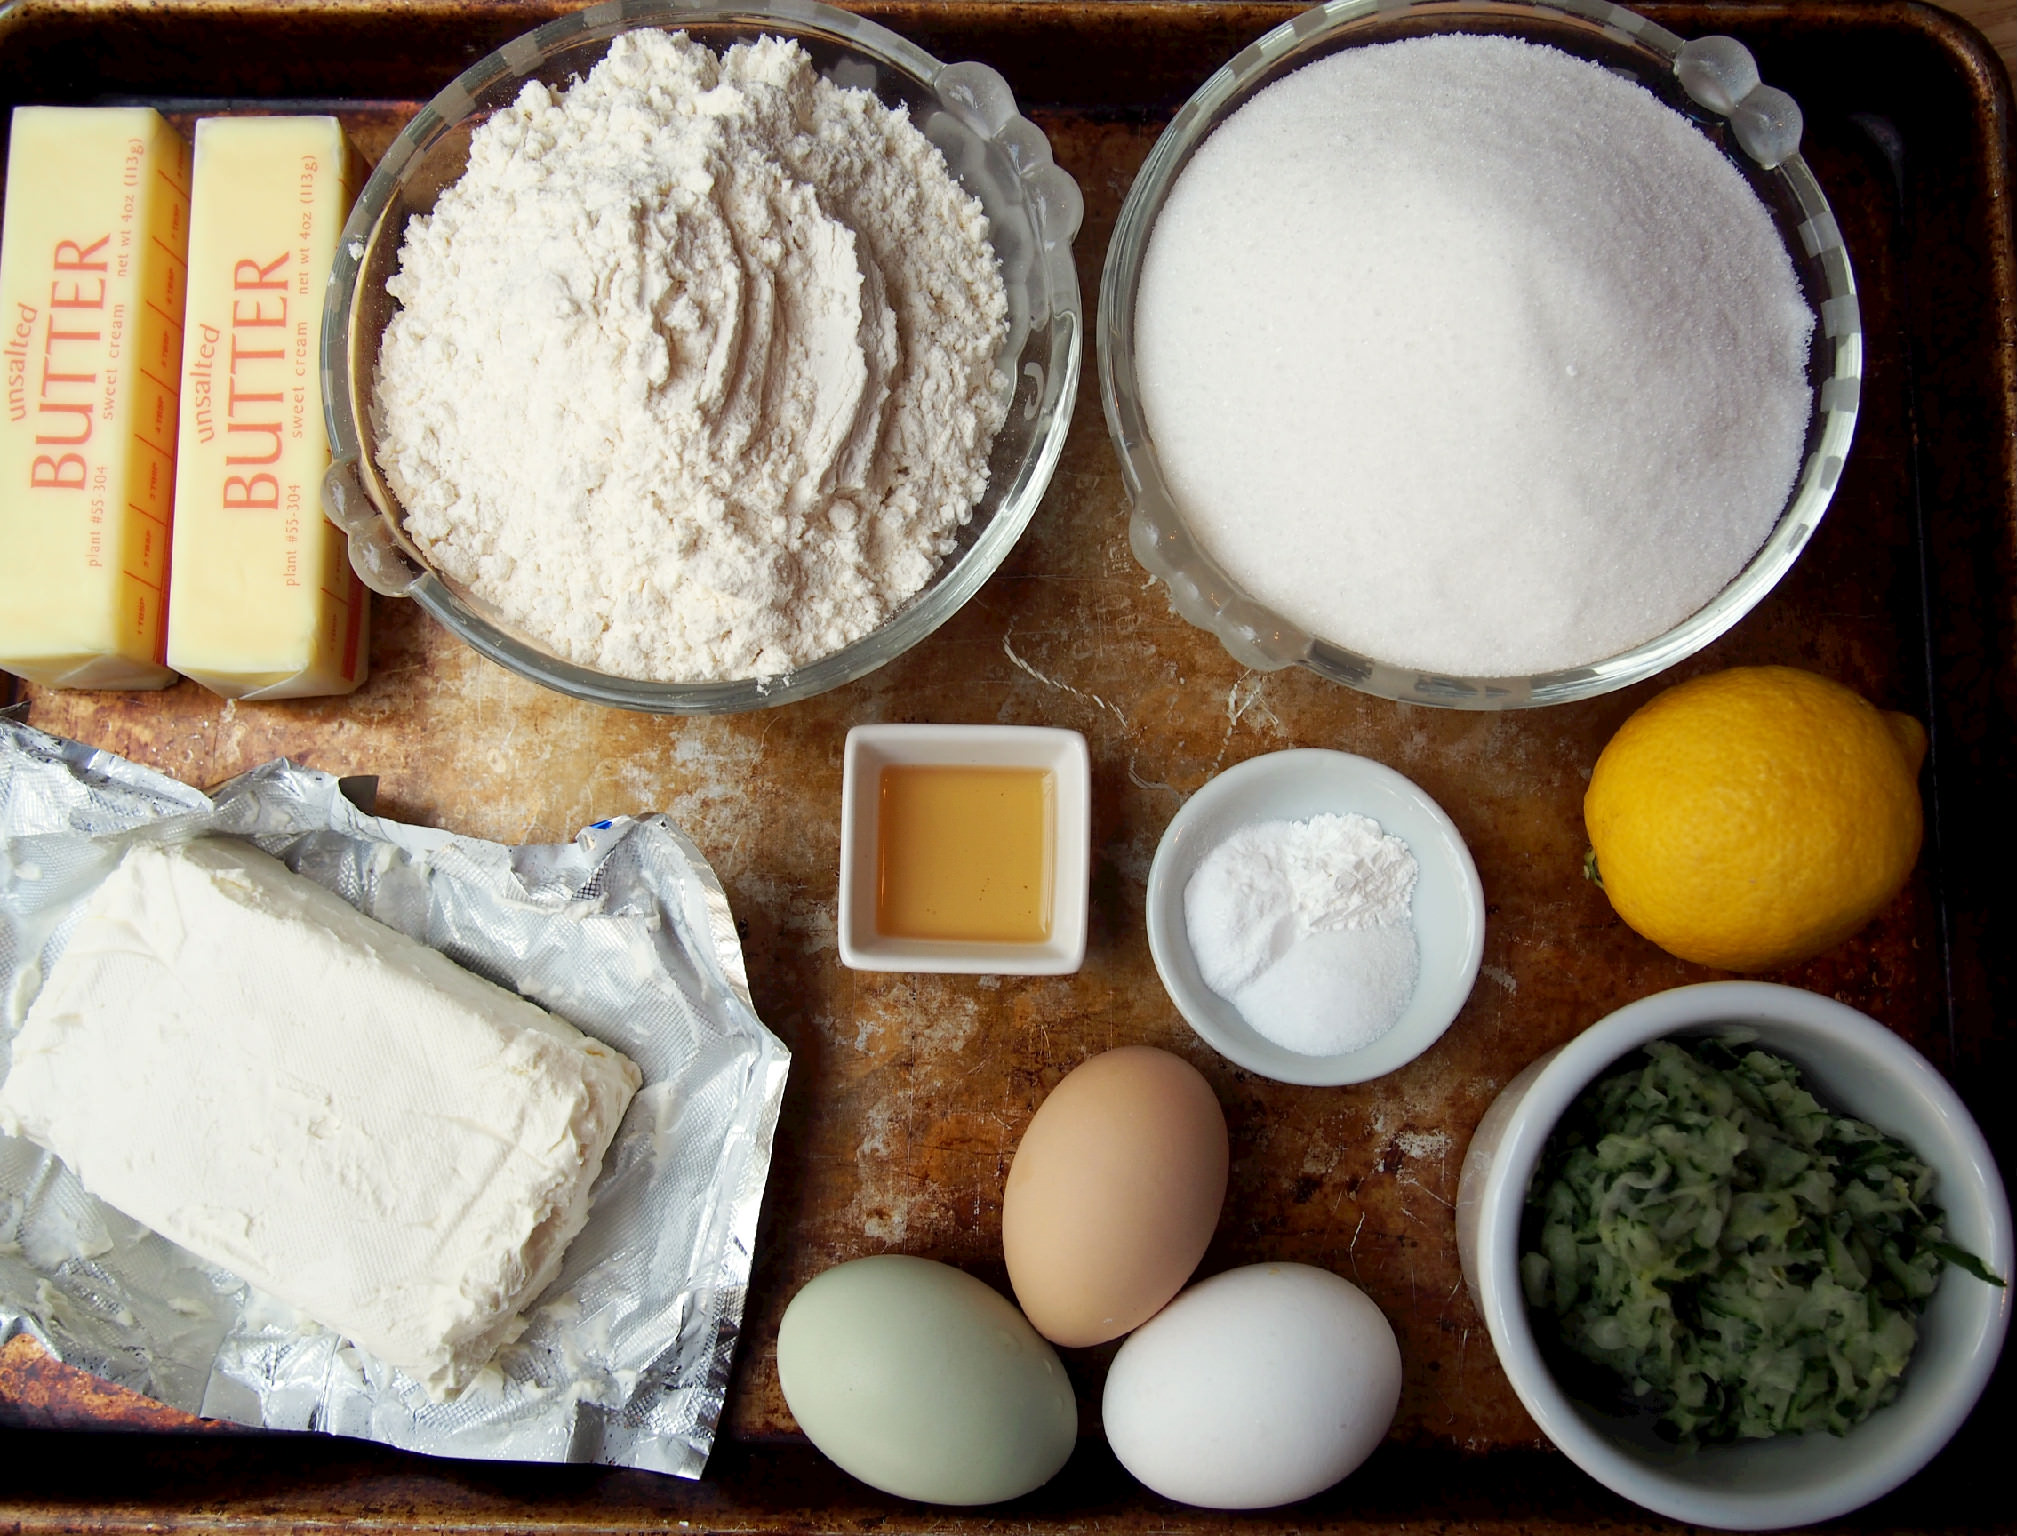 Ingredients to make zucchini bundt cake with lemon cream glaze